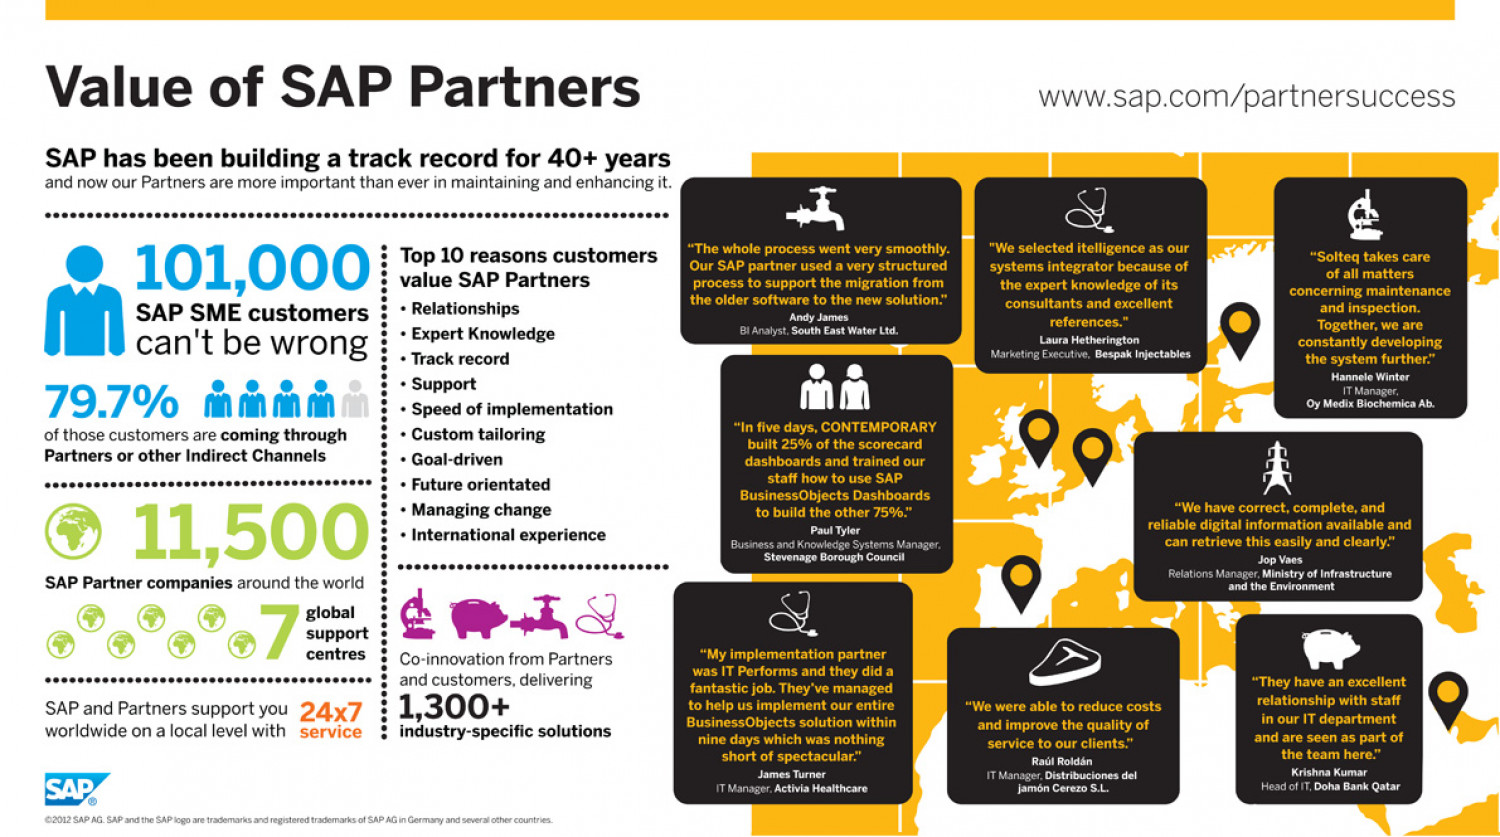 Value of SAP Partners Infographic